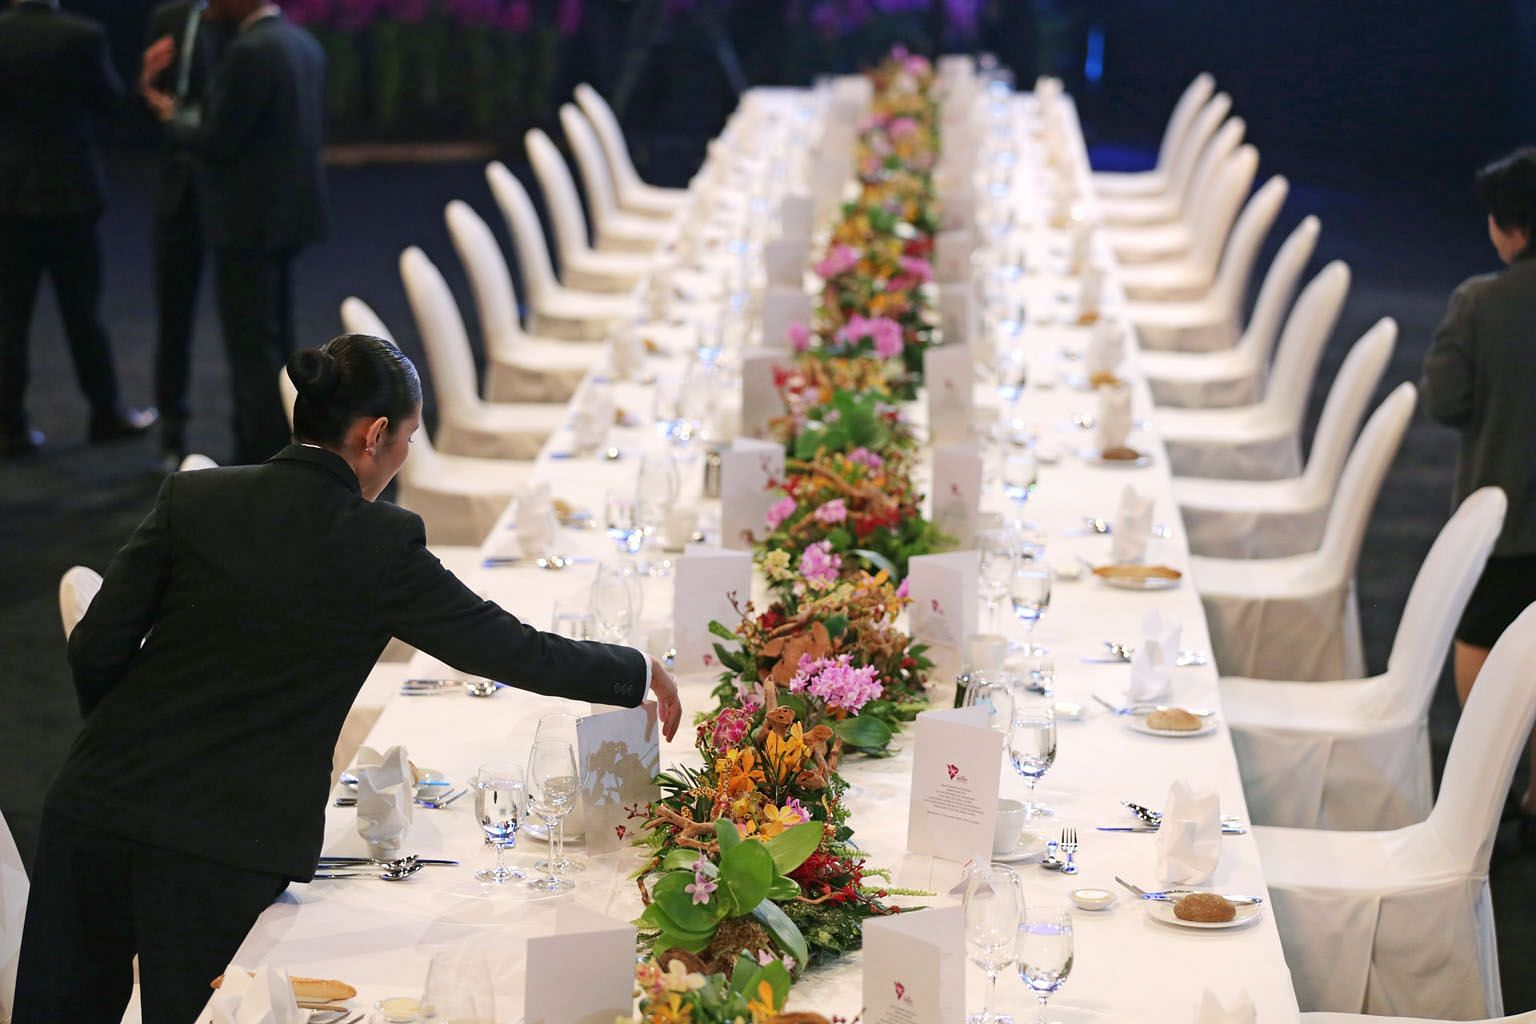 A member of the banquet staff preparing the table for the gala dinner at this year's Asean Summit. During its chairmanship, Singapore spearheaded the Asean Smart Cities Network, which connects cities with private-sector partners to co-develop solutio